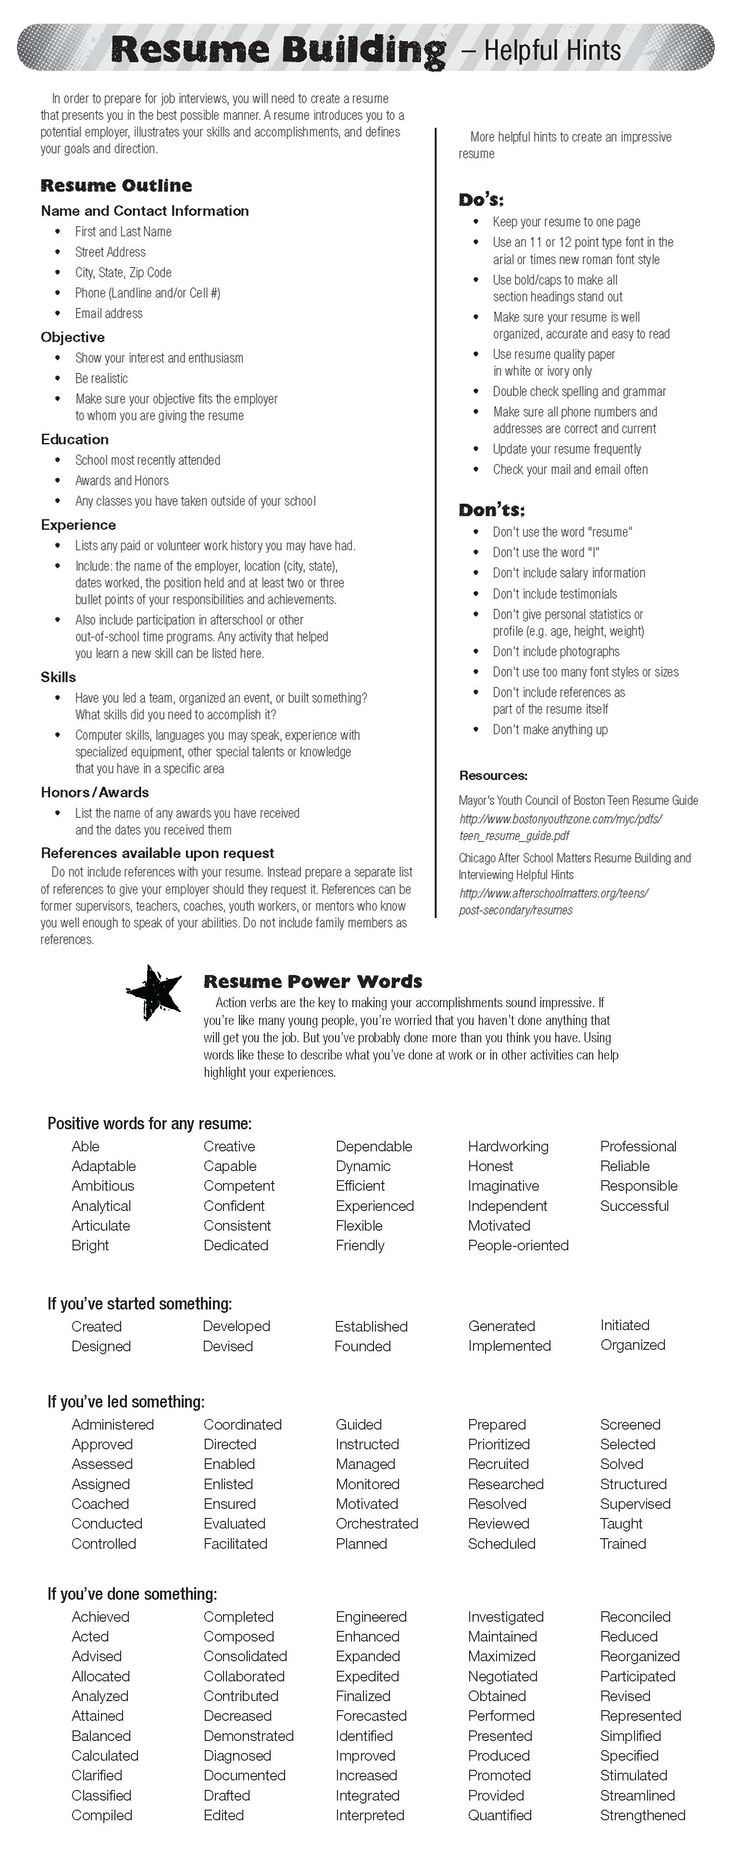 Opposenewapstandardsus  Picturesque  Ideas About Resume On Pinterest  Cv Format Resume Cv And  With Fascinating  Ideas About Resume On Pinterest  Cv Format Resume Cv And Resume Templates With Awesome Linkedin Resume Generator Also Sample Of Resumes In Addition Career Change Resume Samples And Systems Analyst Resume As Well As Resume Builder For Teens Additionally Resume Vitae From Pinterestcom With Opposenewapstandardsus  Fascinating  Ideas About Resume On Pinterest  Cv Format Resume Cv And  With Awesome  Ideas About Resume On Pinterest  Cv Format Resume Cv And Resume Templates And Picturesque Linkedin Resume Generator Also Sample Of Resumes In Addition Career Change Resume Samples From Pinterestcom